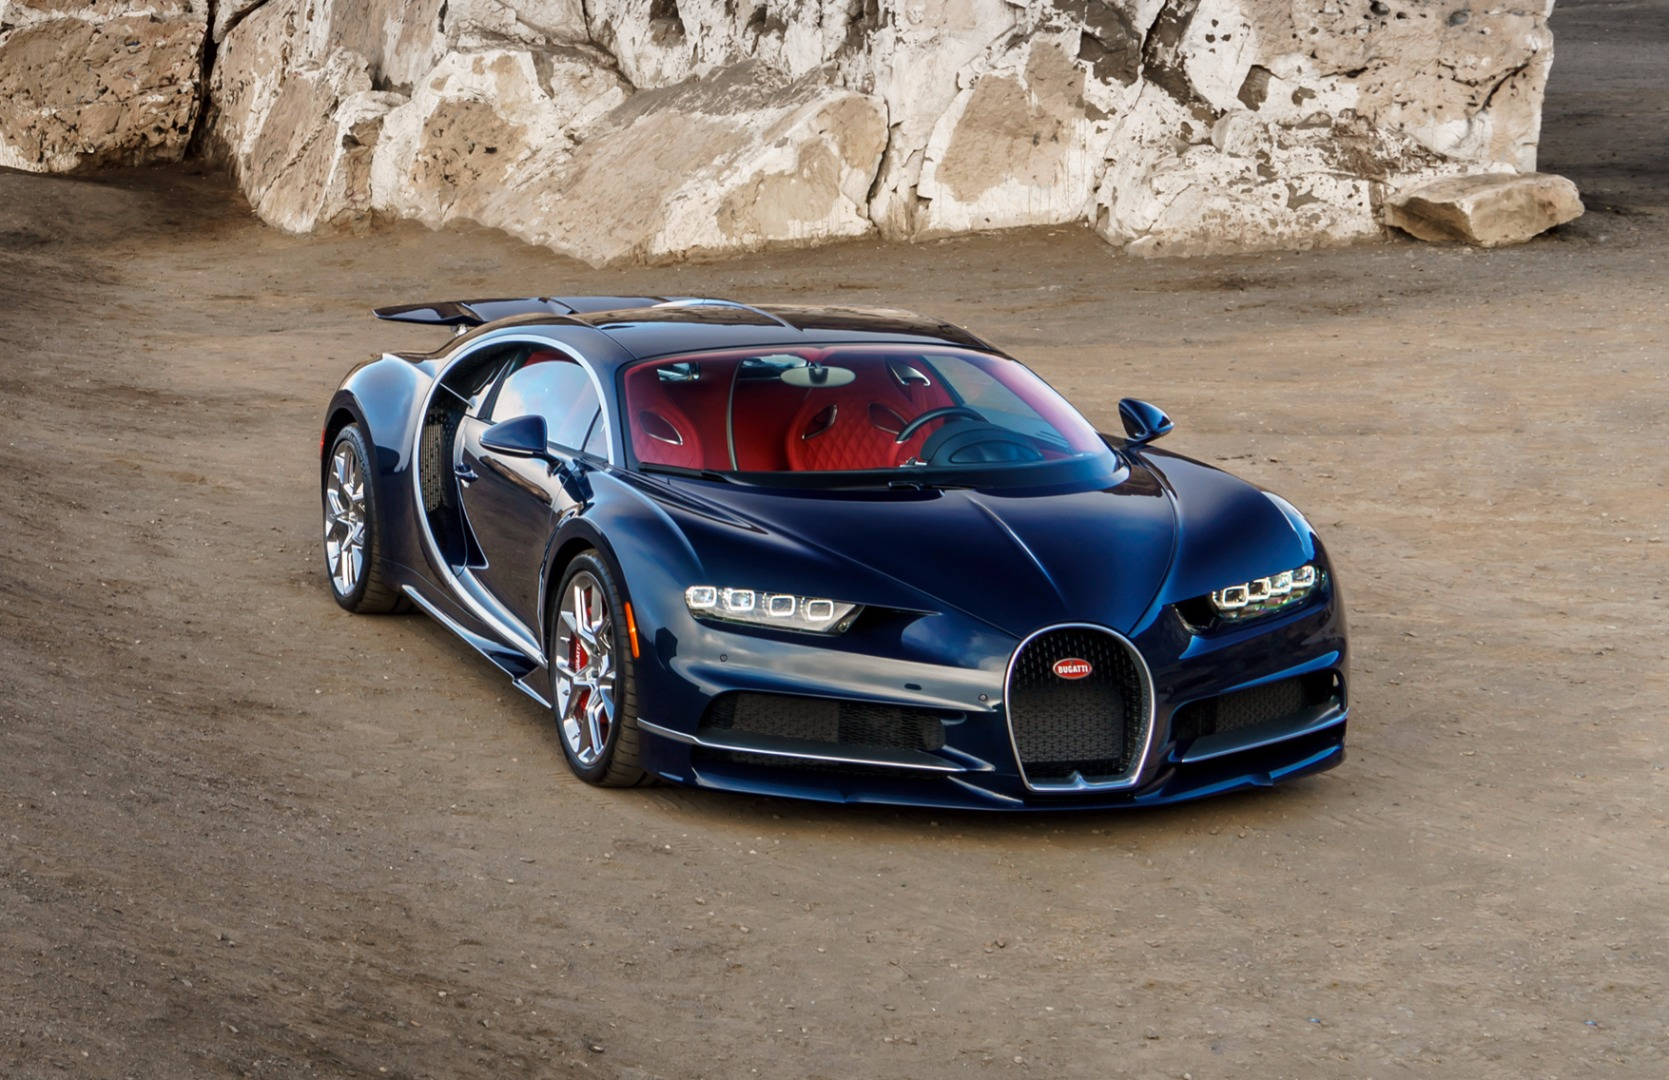 Lamborghini vs bugatti wallpaper